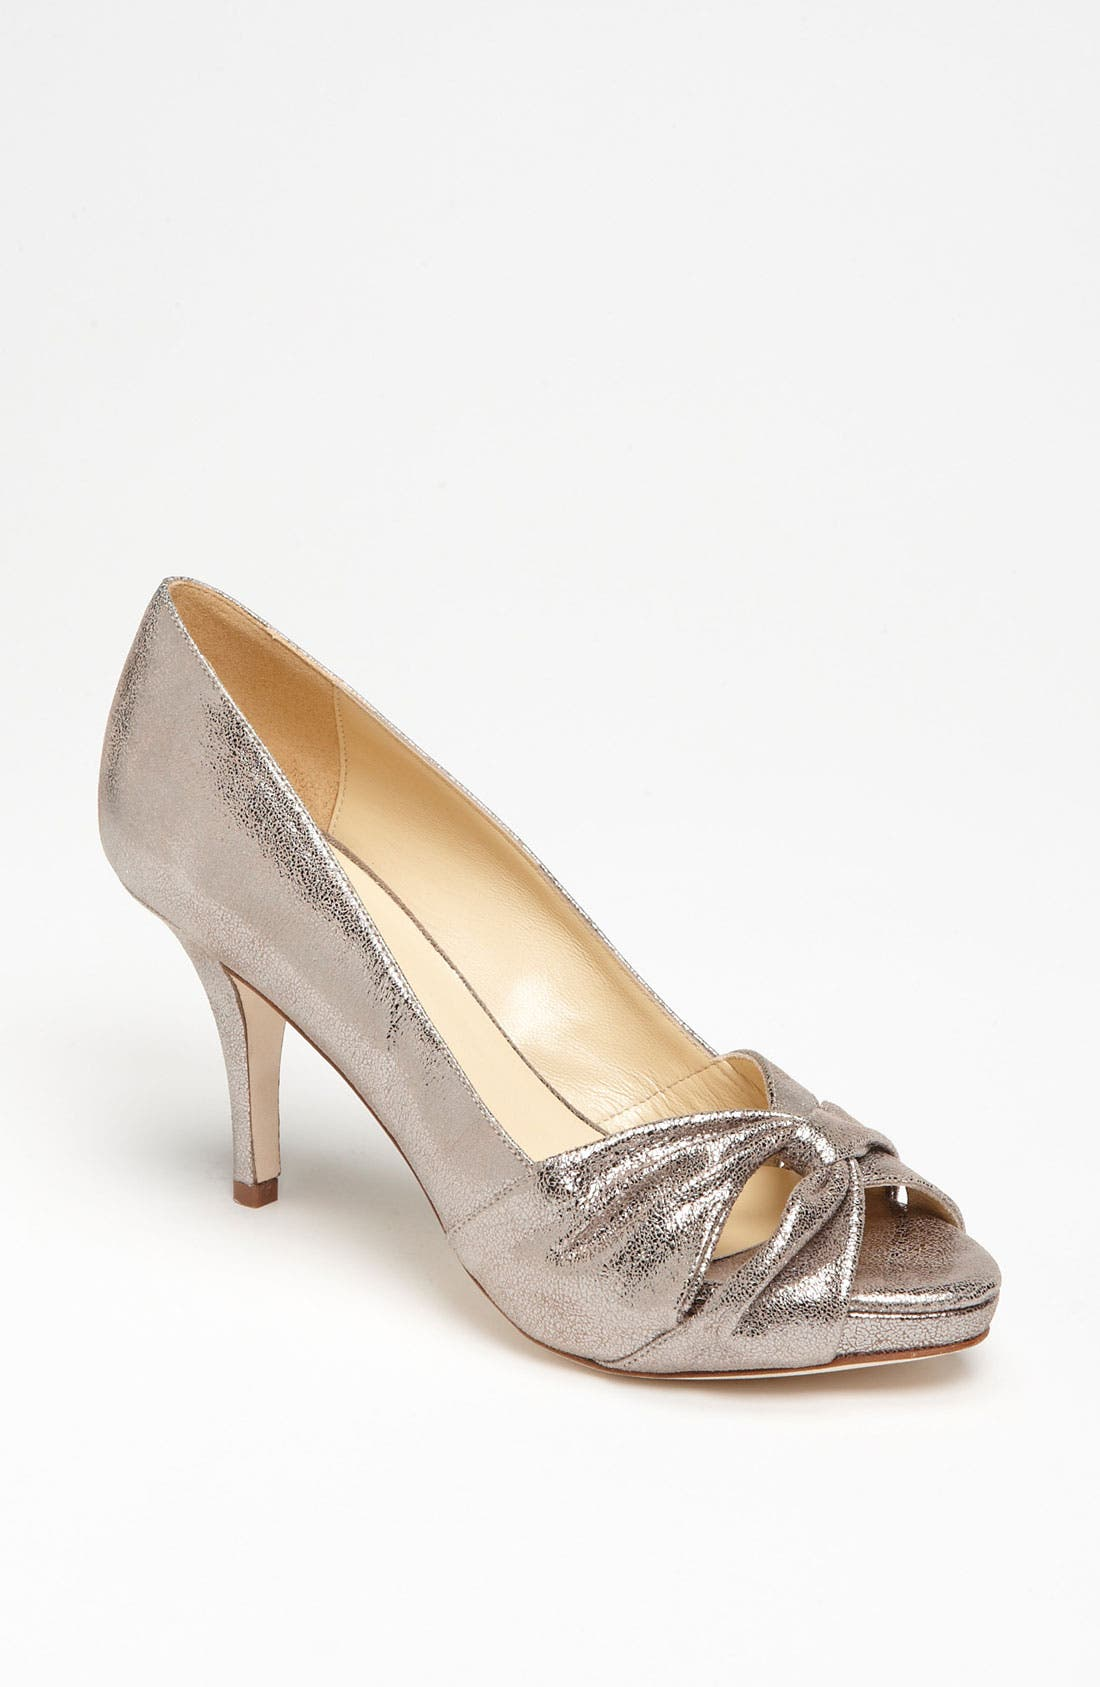 Alternate Image 1 Selected - kate spade new york 'bridget' pump